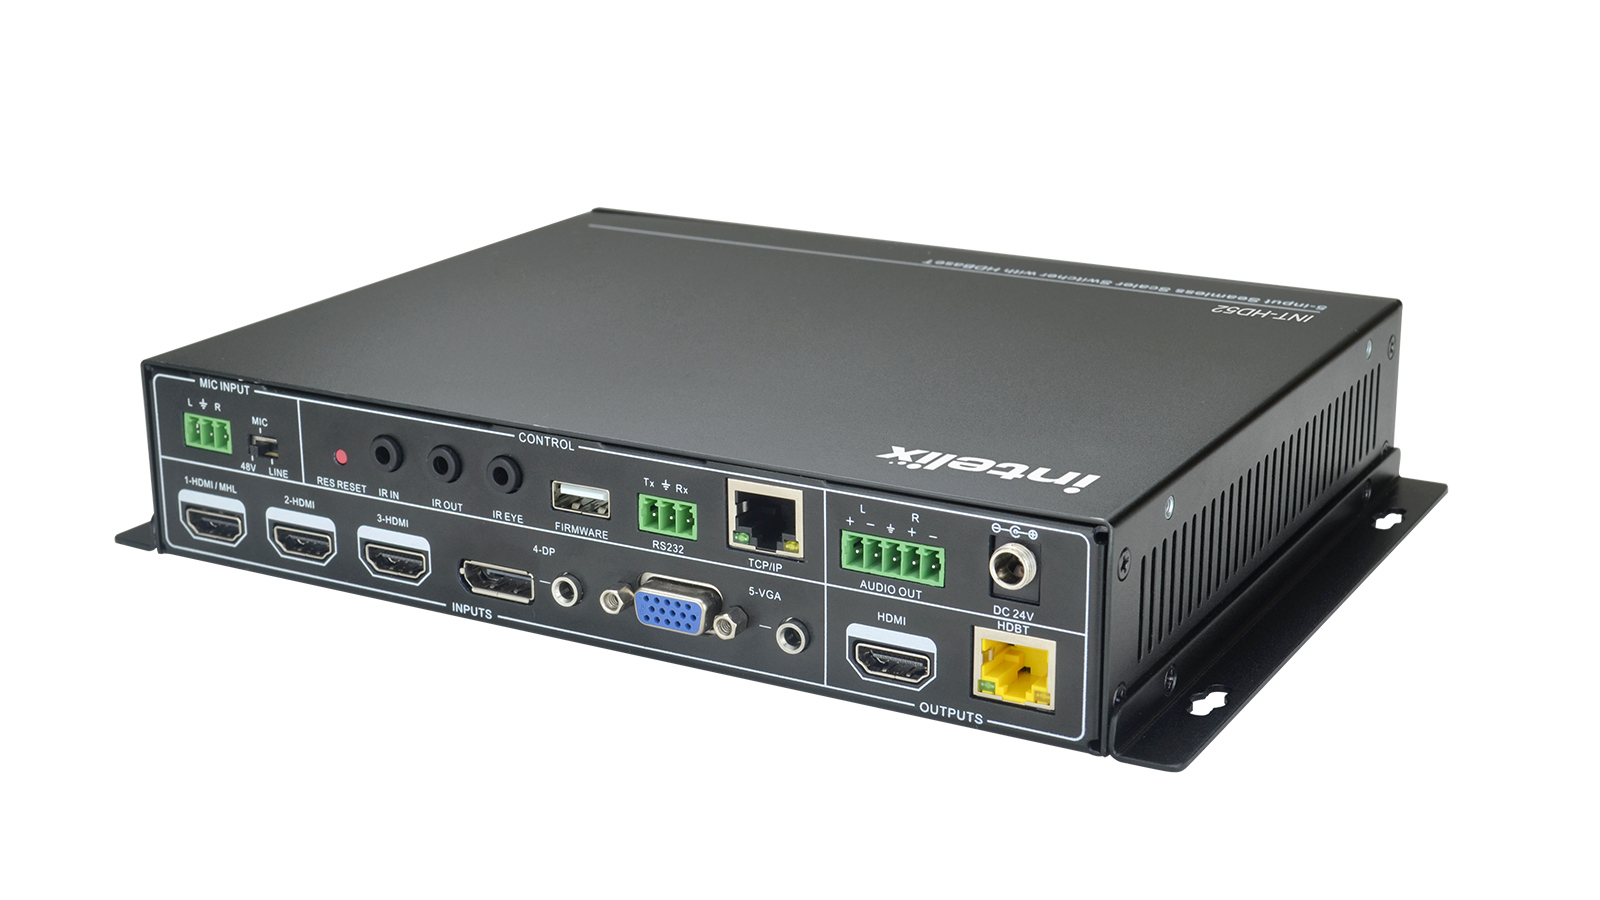 Int Hd52 5x1 Auto Switching Presentation Switcher With Hdbaset Output 25w Audio Amplifier Circuit Using Tda2613